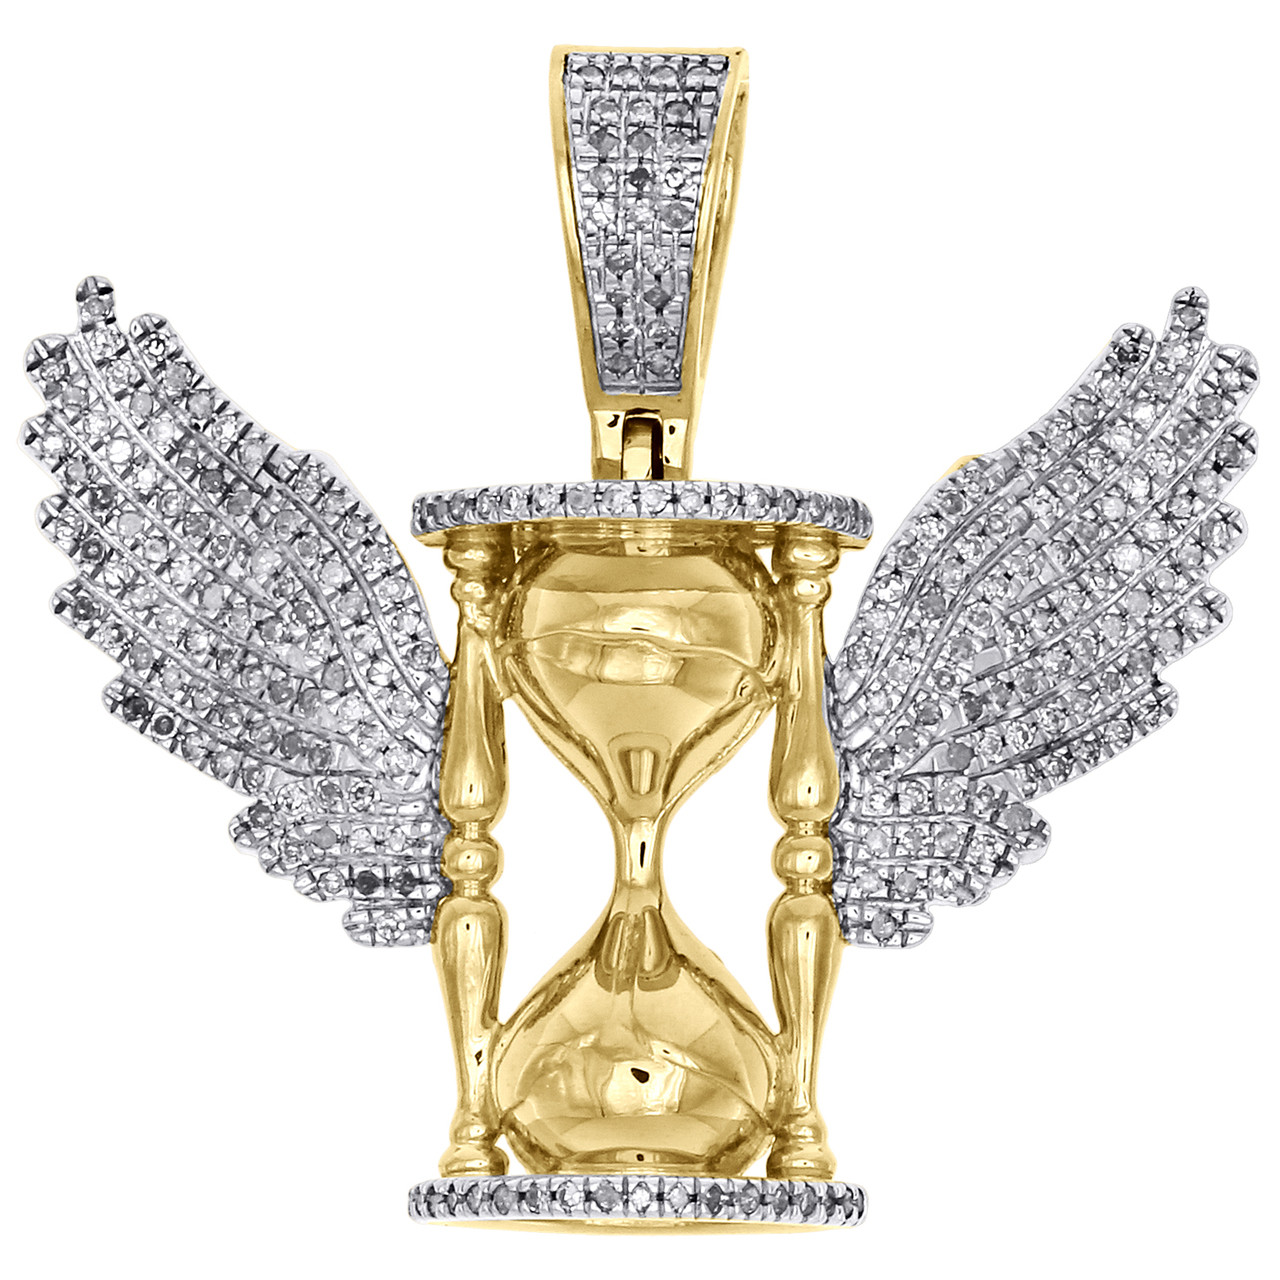 Charms for Bracelets and Necklaces 10k Yellow Gold Hourglass Charm